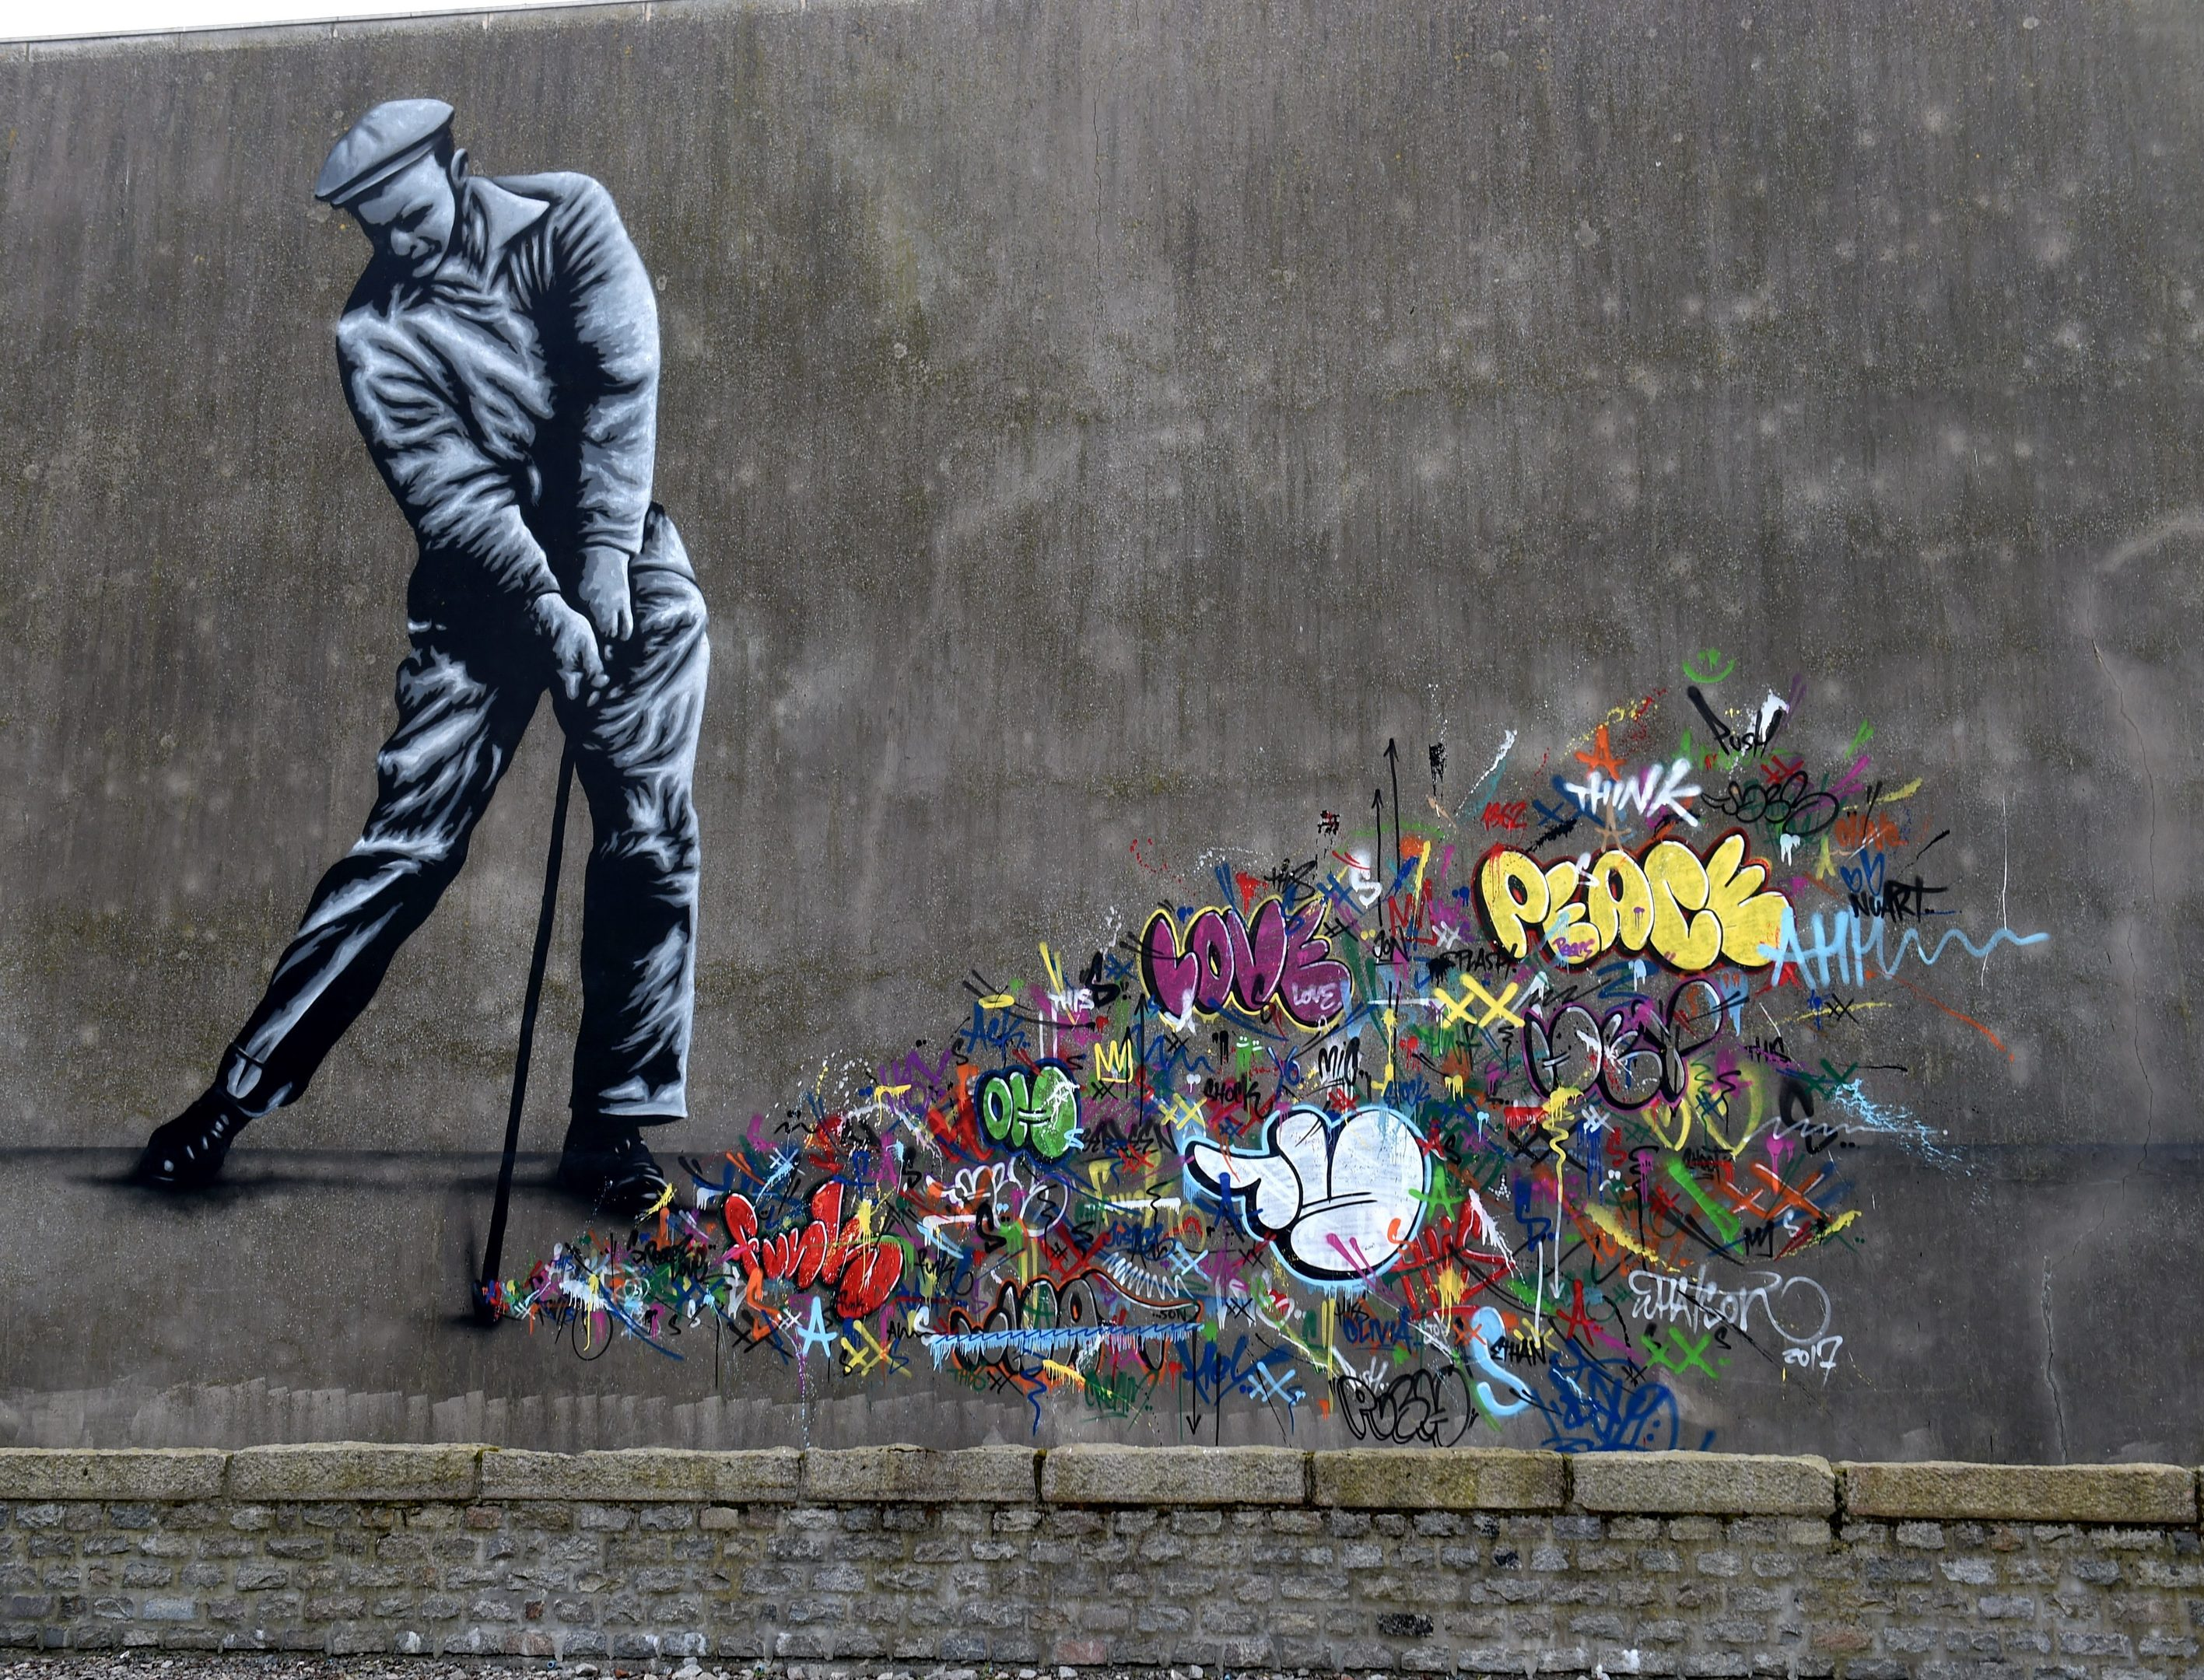 An artwork by Martin Whatson on Queen Street.